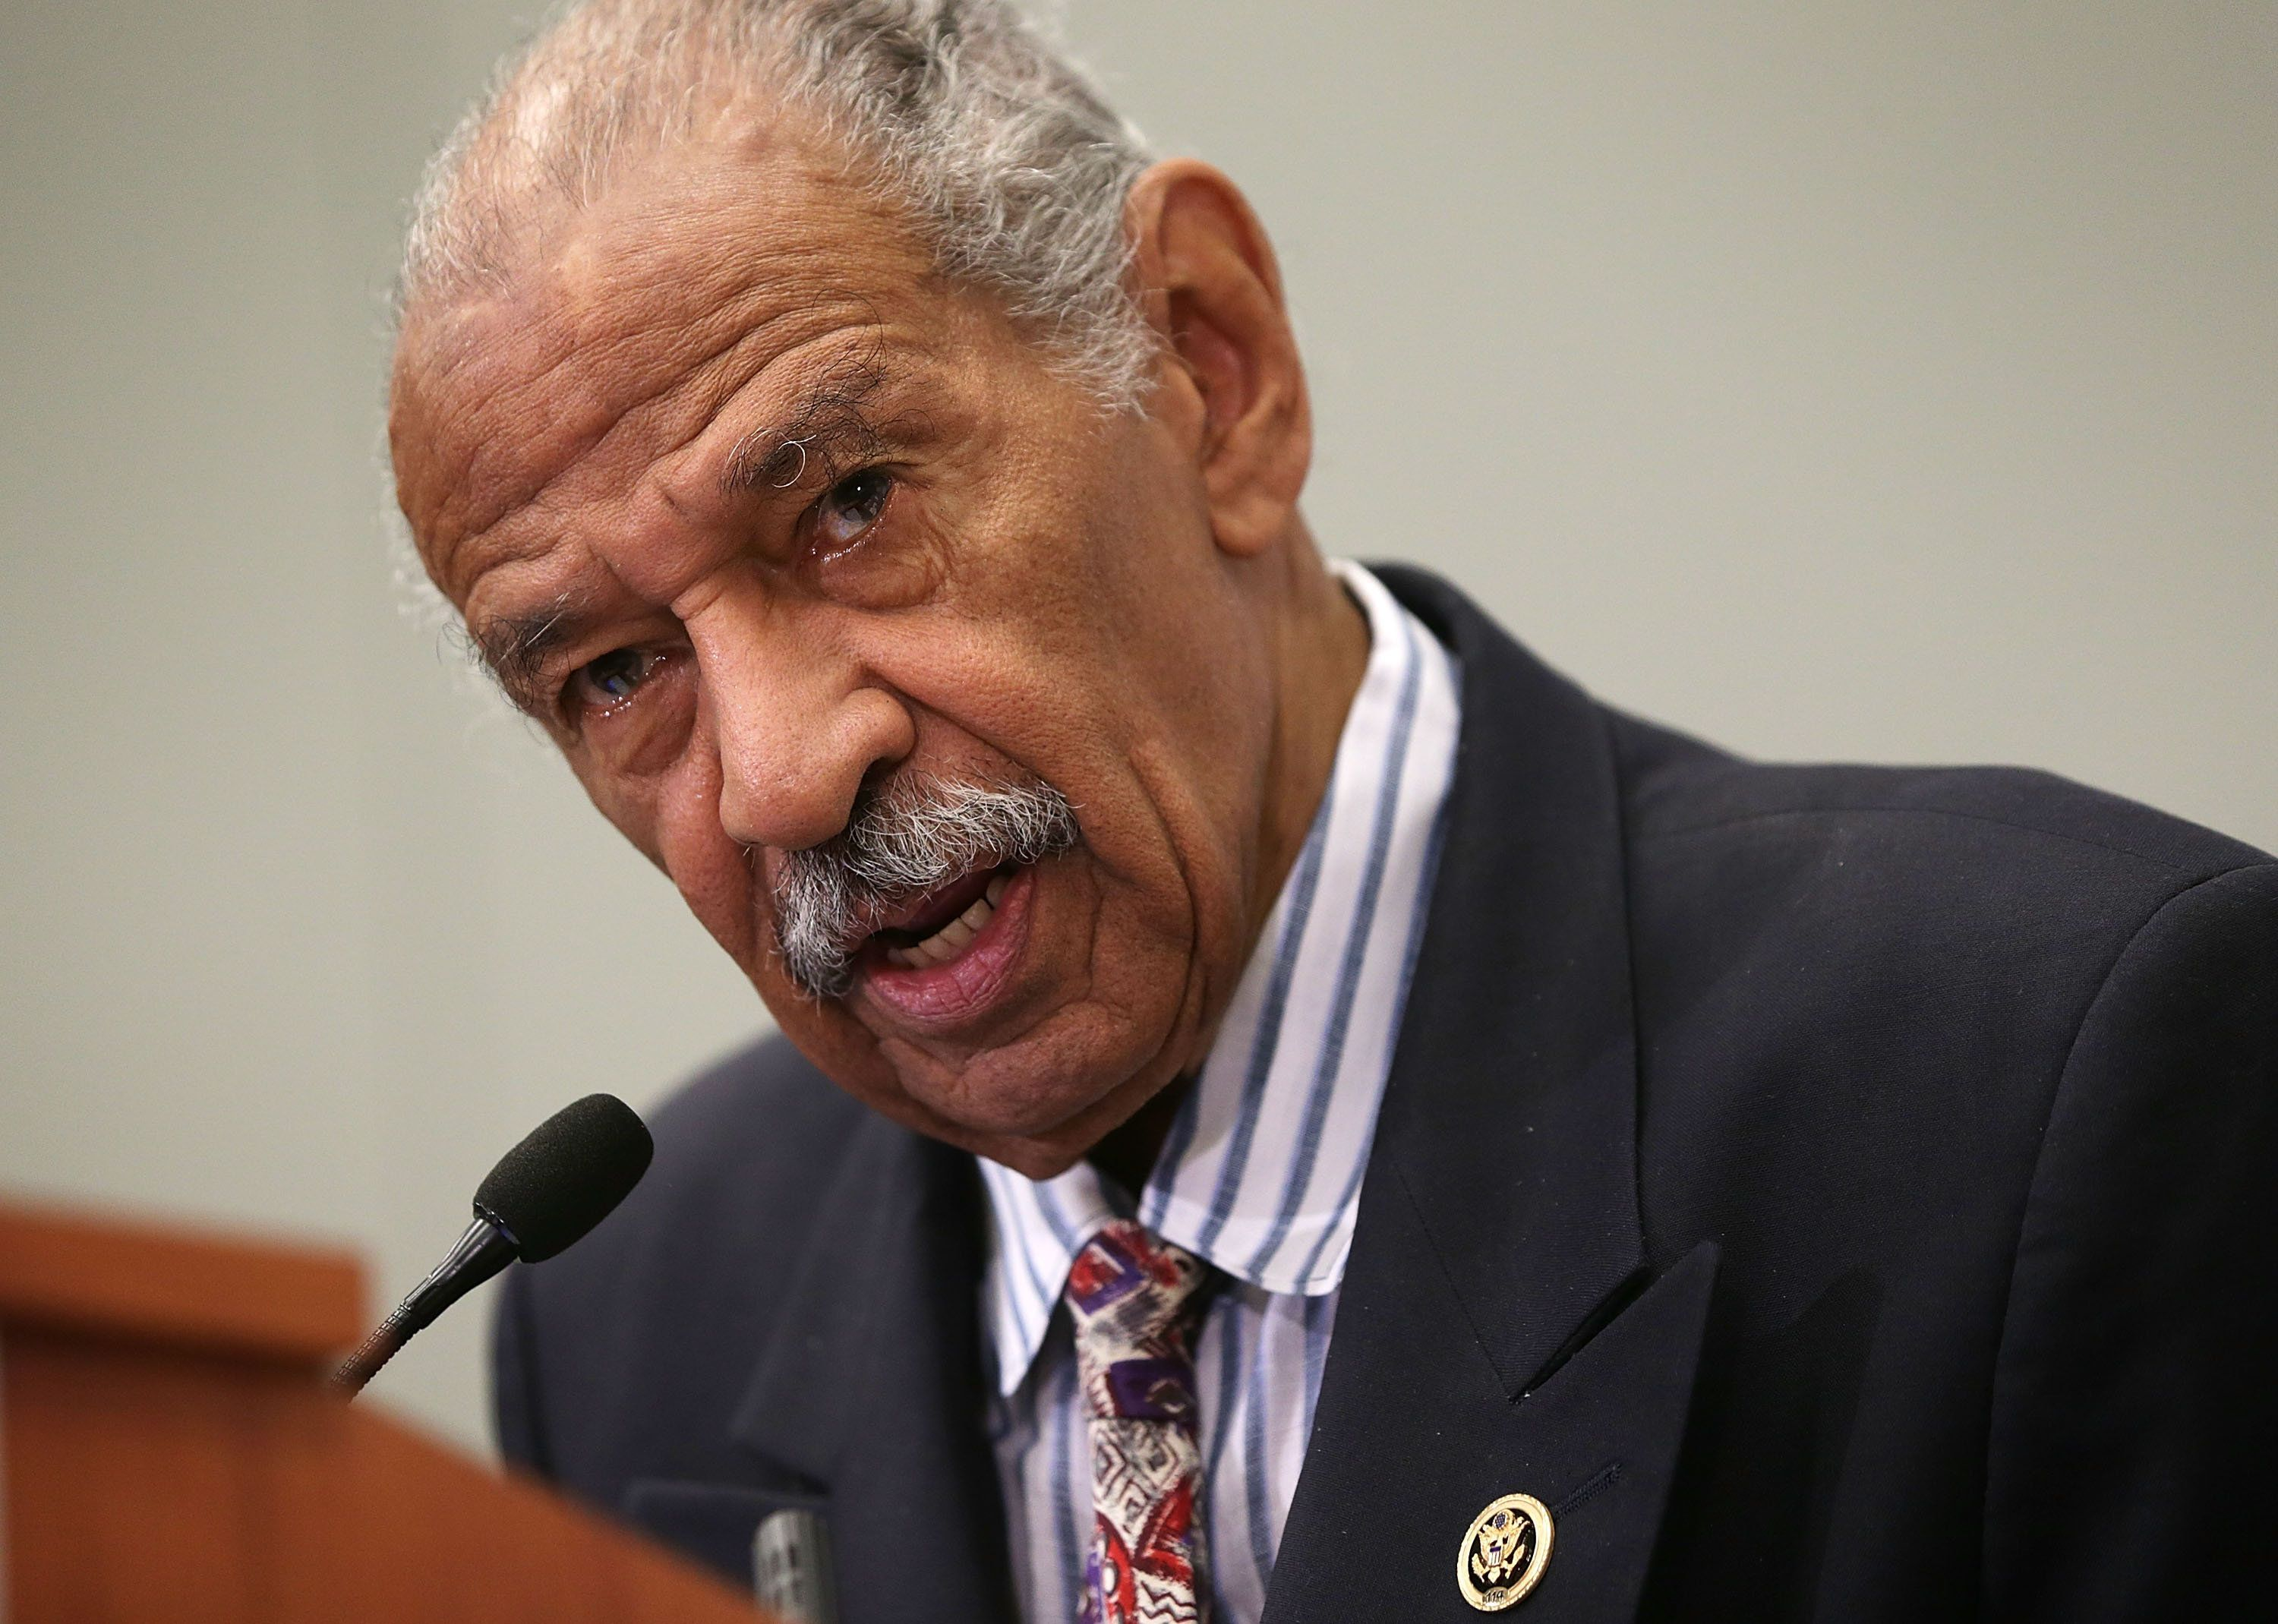 Rep. John Conyers not seeking re-election after term